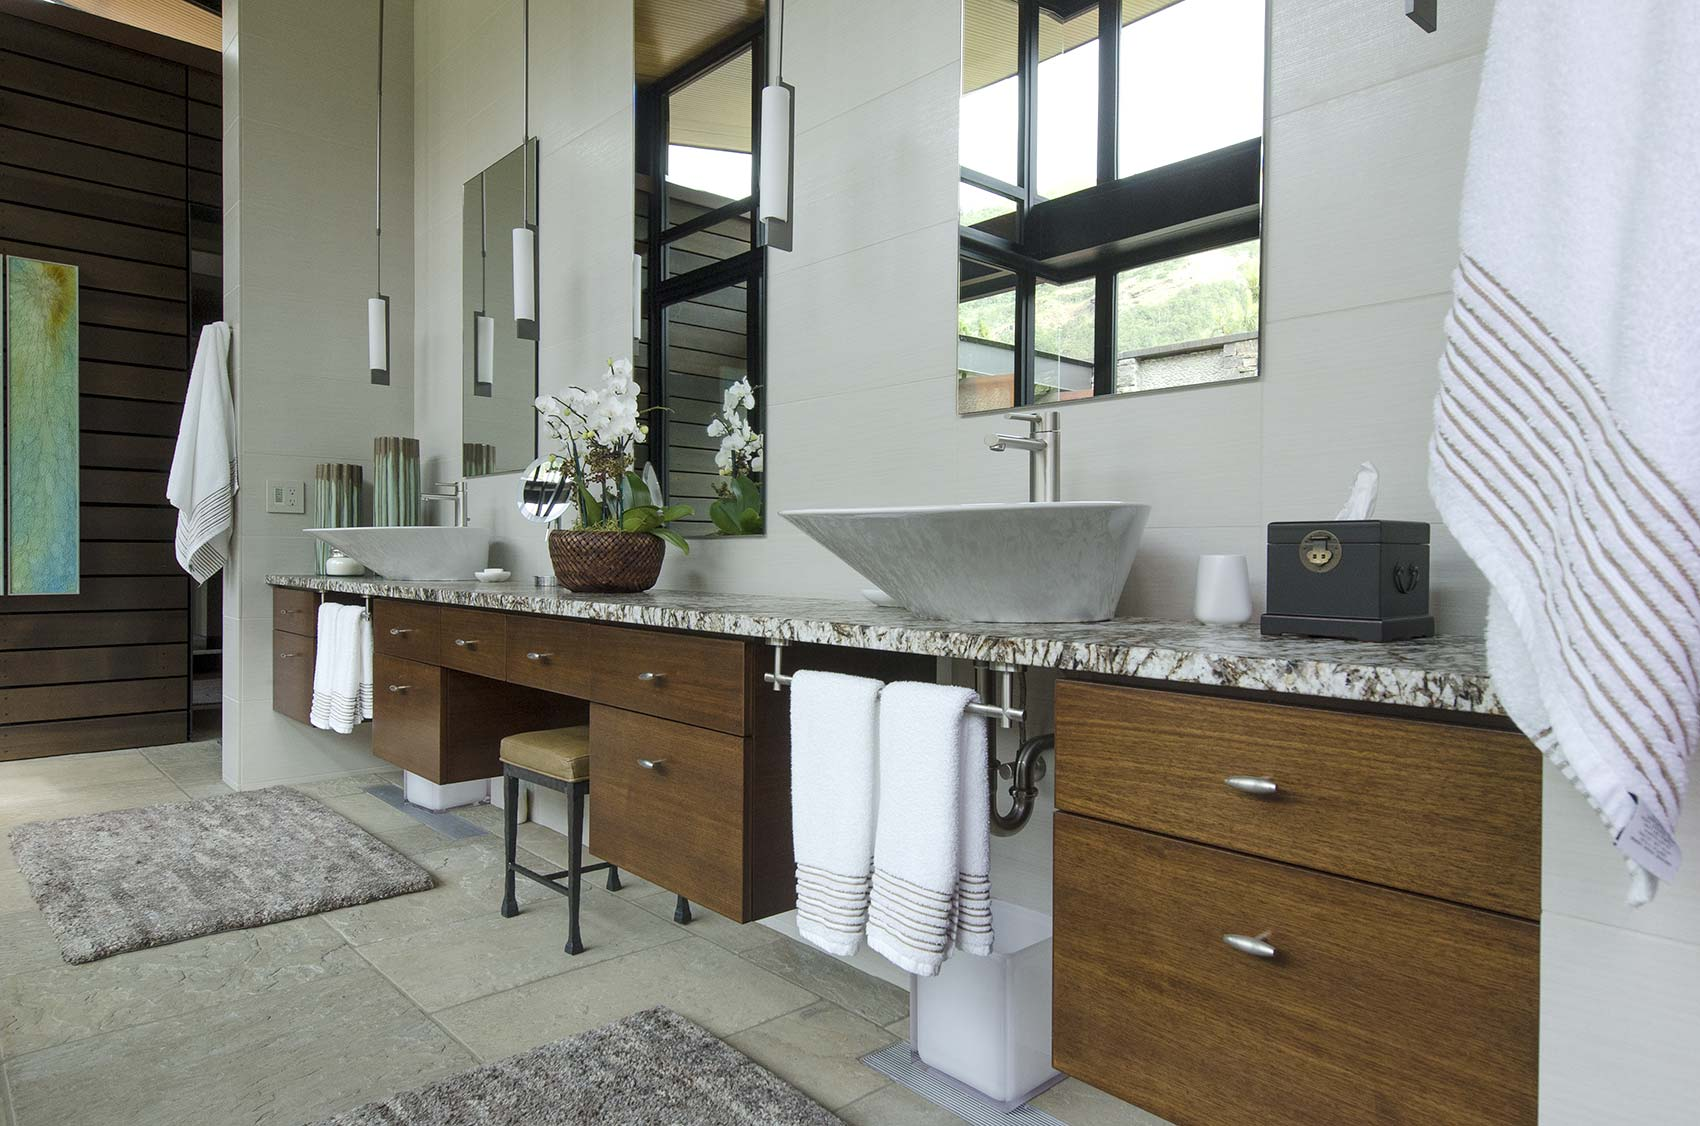 master bath from project in Rowena, Oregon built by Huberd Design